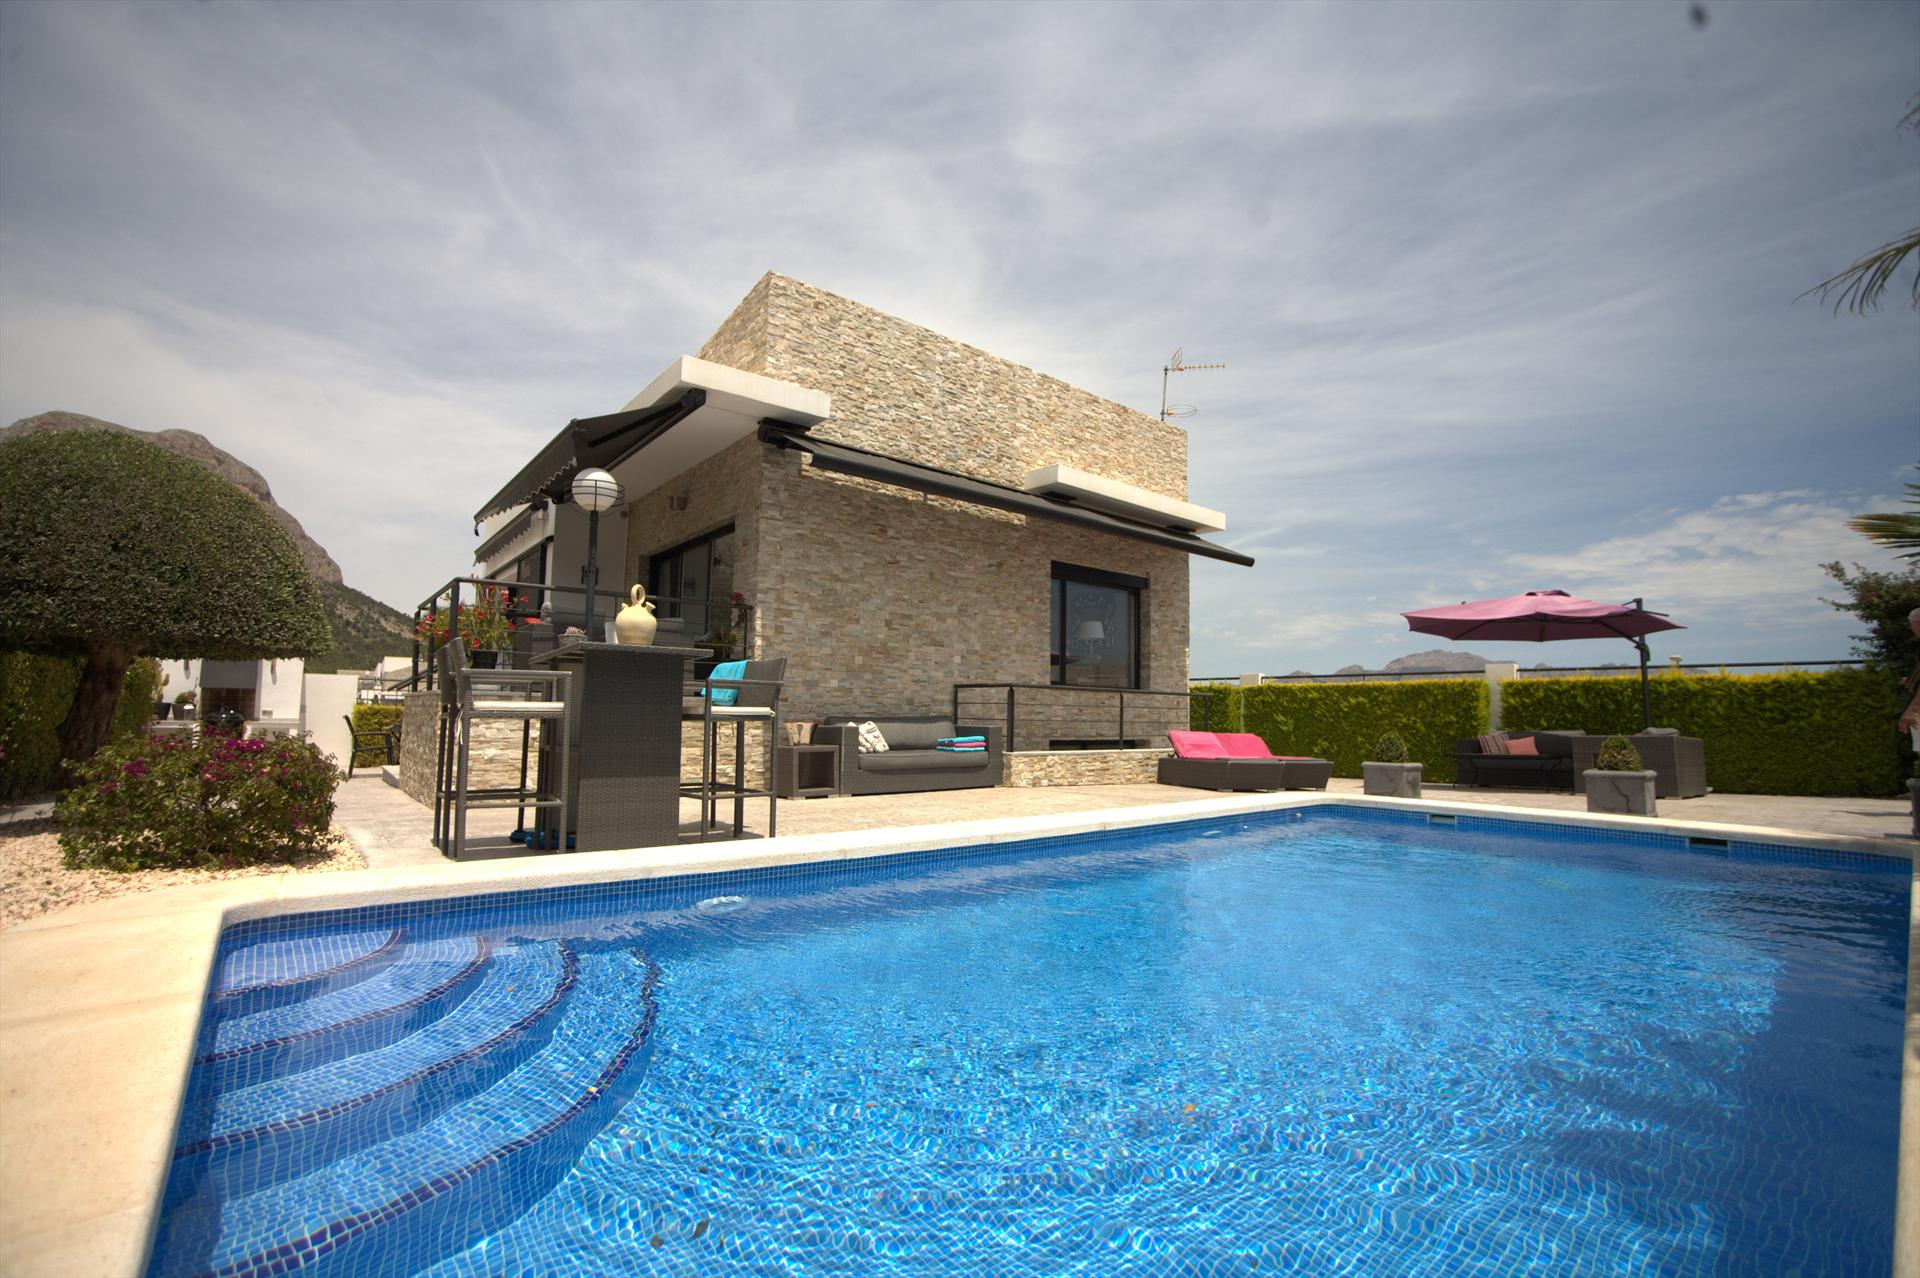 Casa Pimienta 8, RENT A HOLIDAYVILLA IN POLOP, COSTA BLANCA.Modern new house, 2 floors situated in a quiet modern urbanisation and very well.....